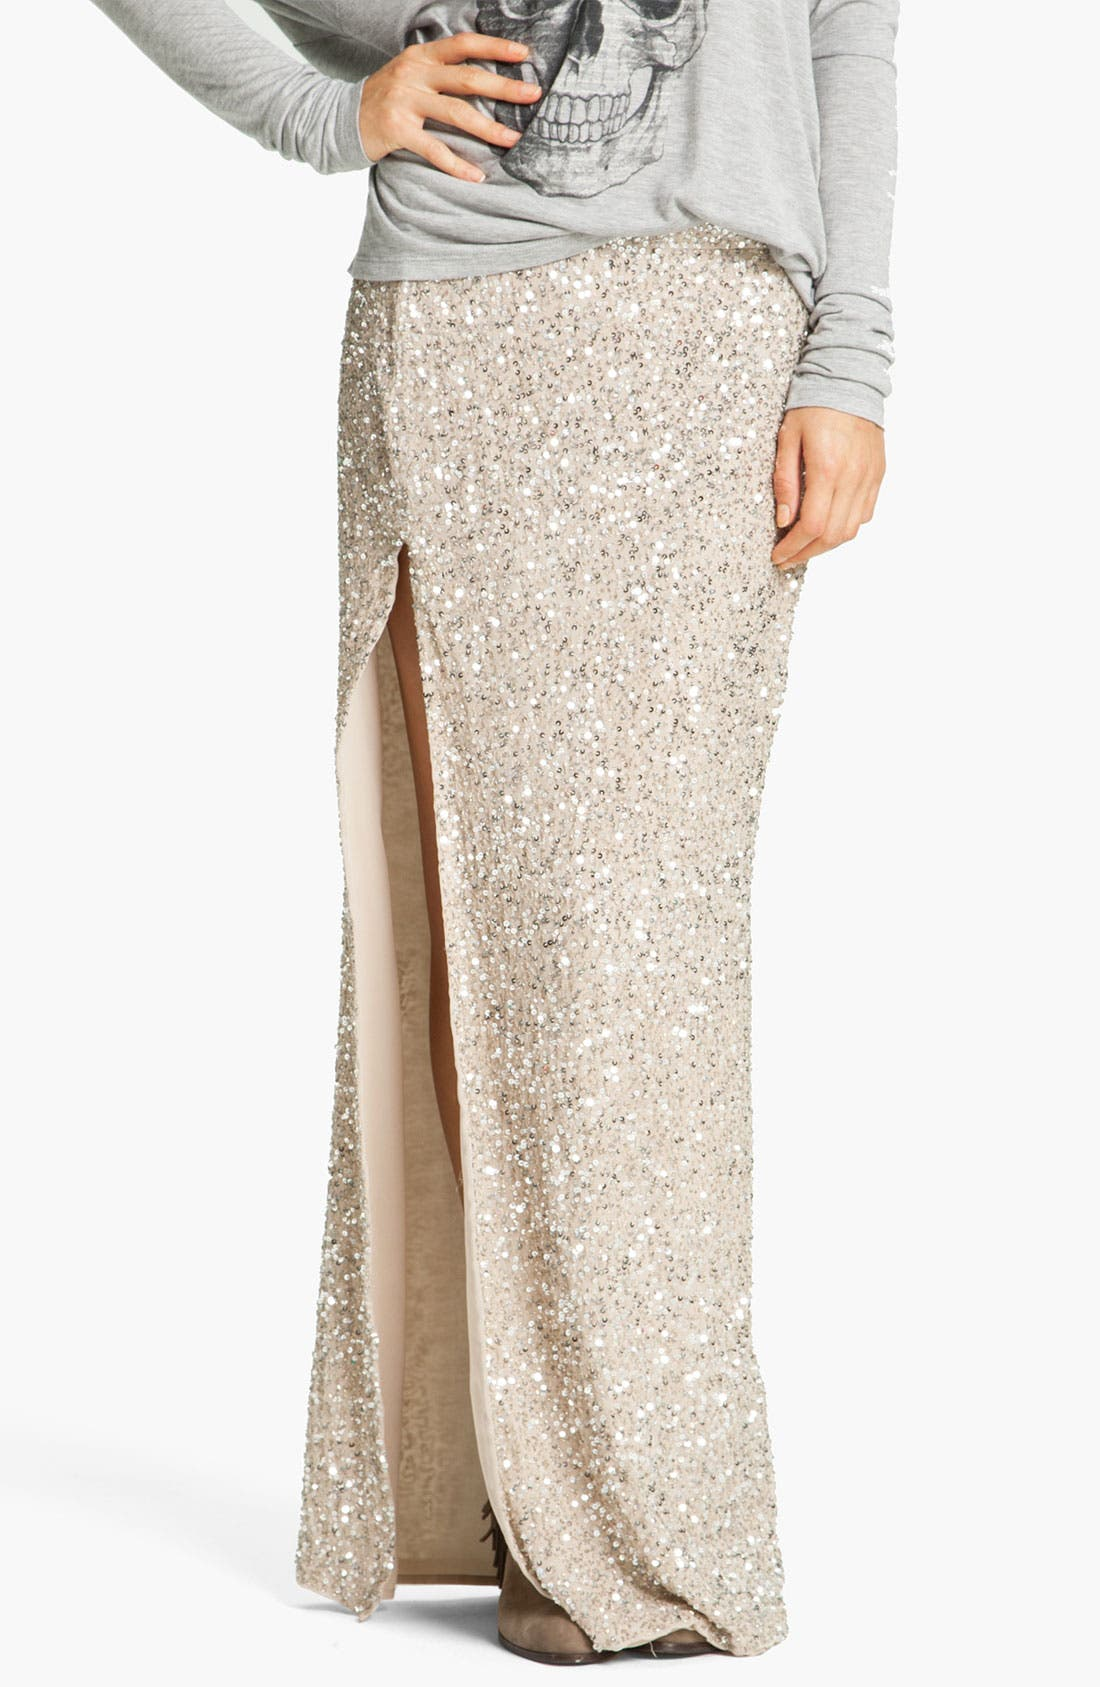 HAUTE HIPPIE Embellished Maxi Skirt, Main, color, 040